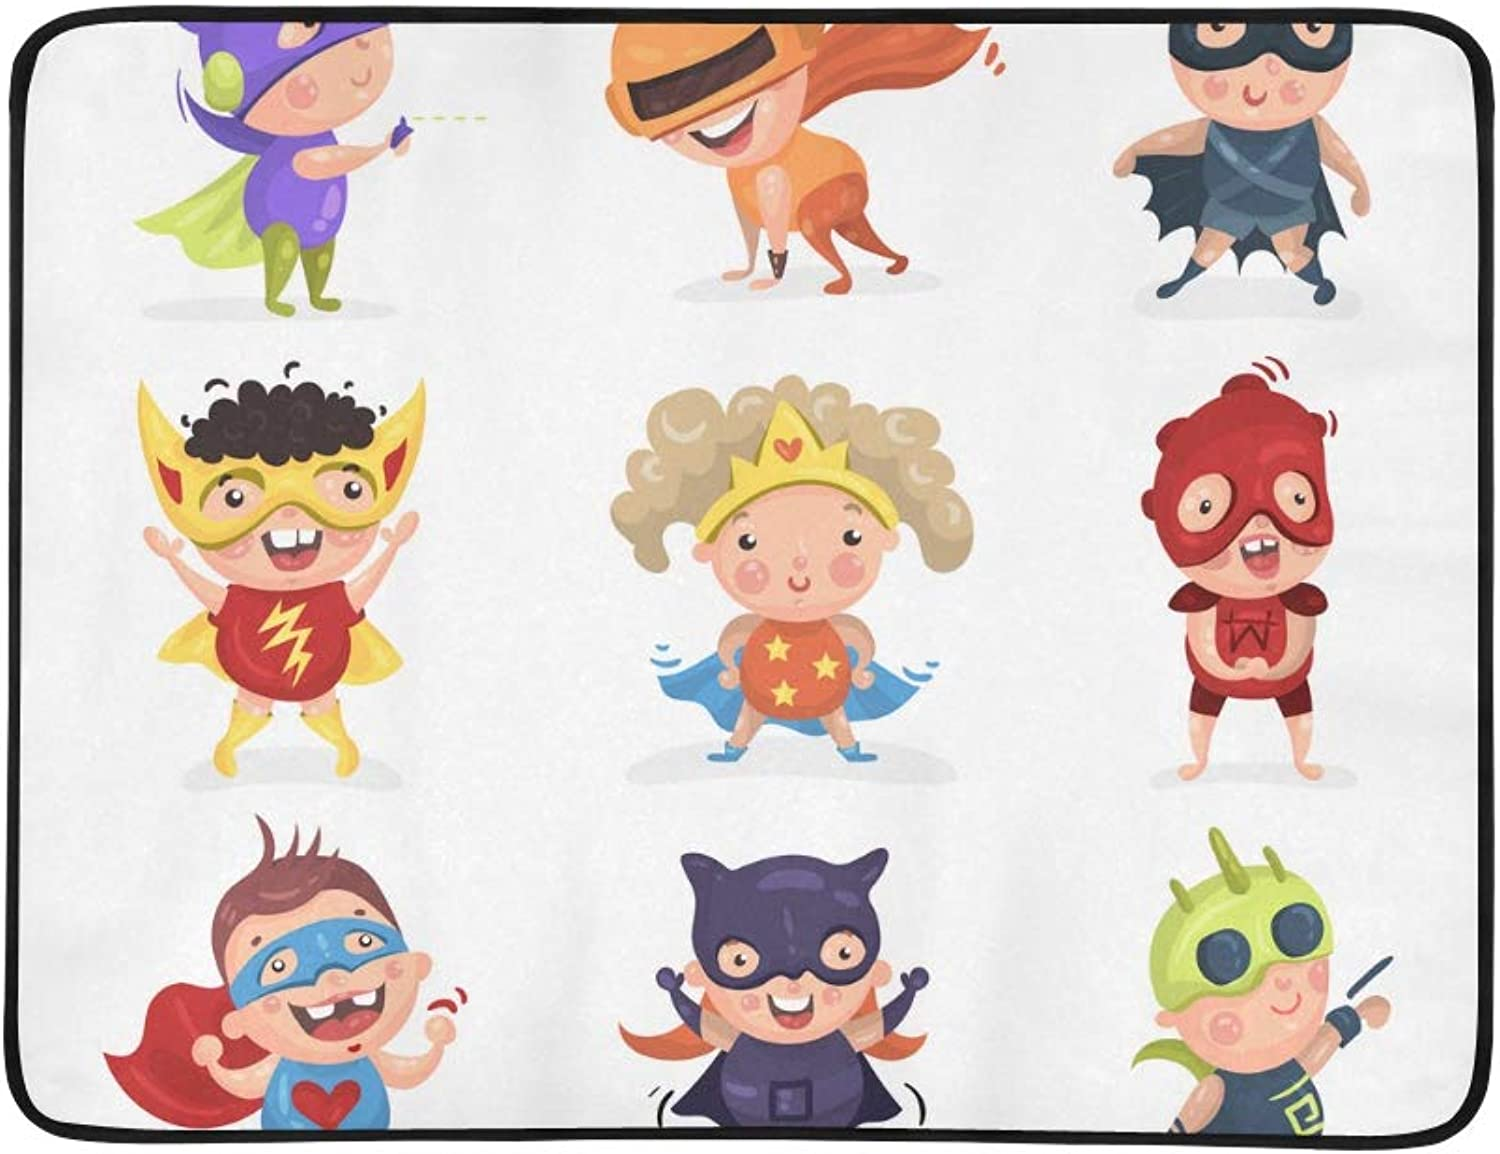 Cute Superhero Kids Pattern Portable and Foldable Blanket Mat 60x78 Inch Handy Mat for Camping Picnic Beach Indoor Outdoor Travel